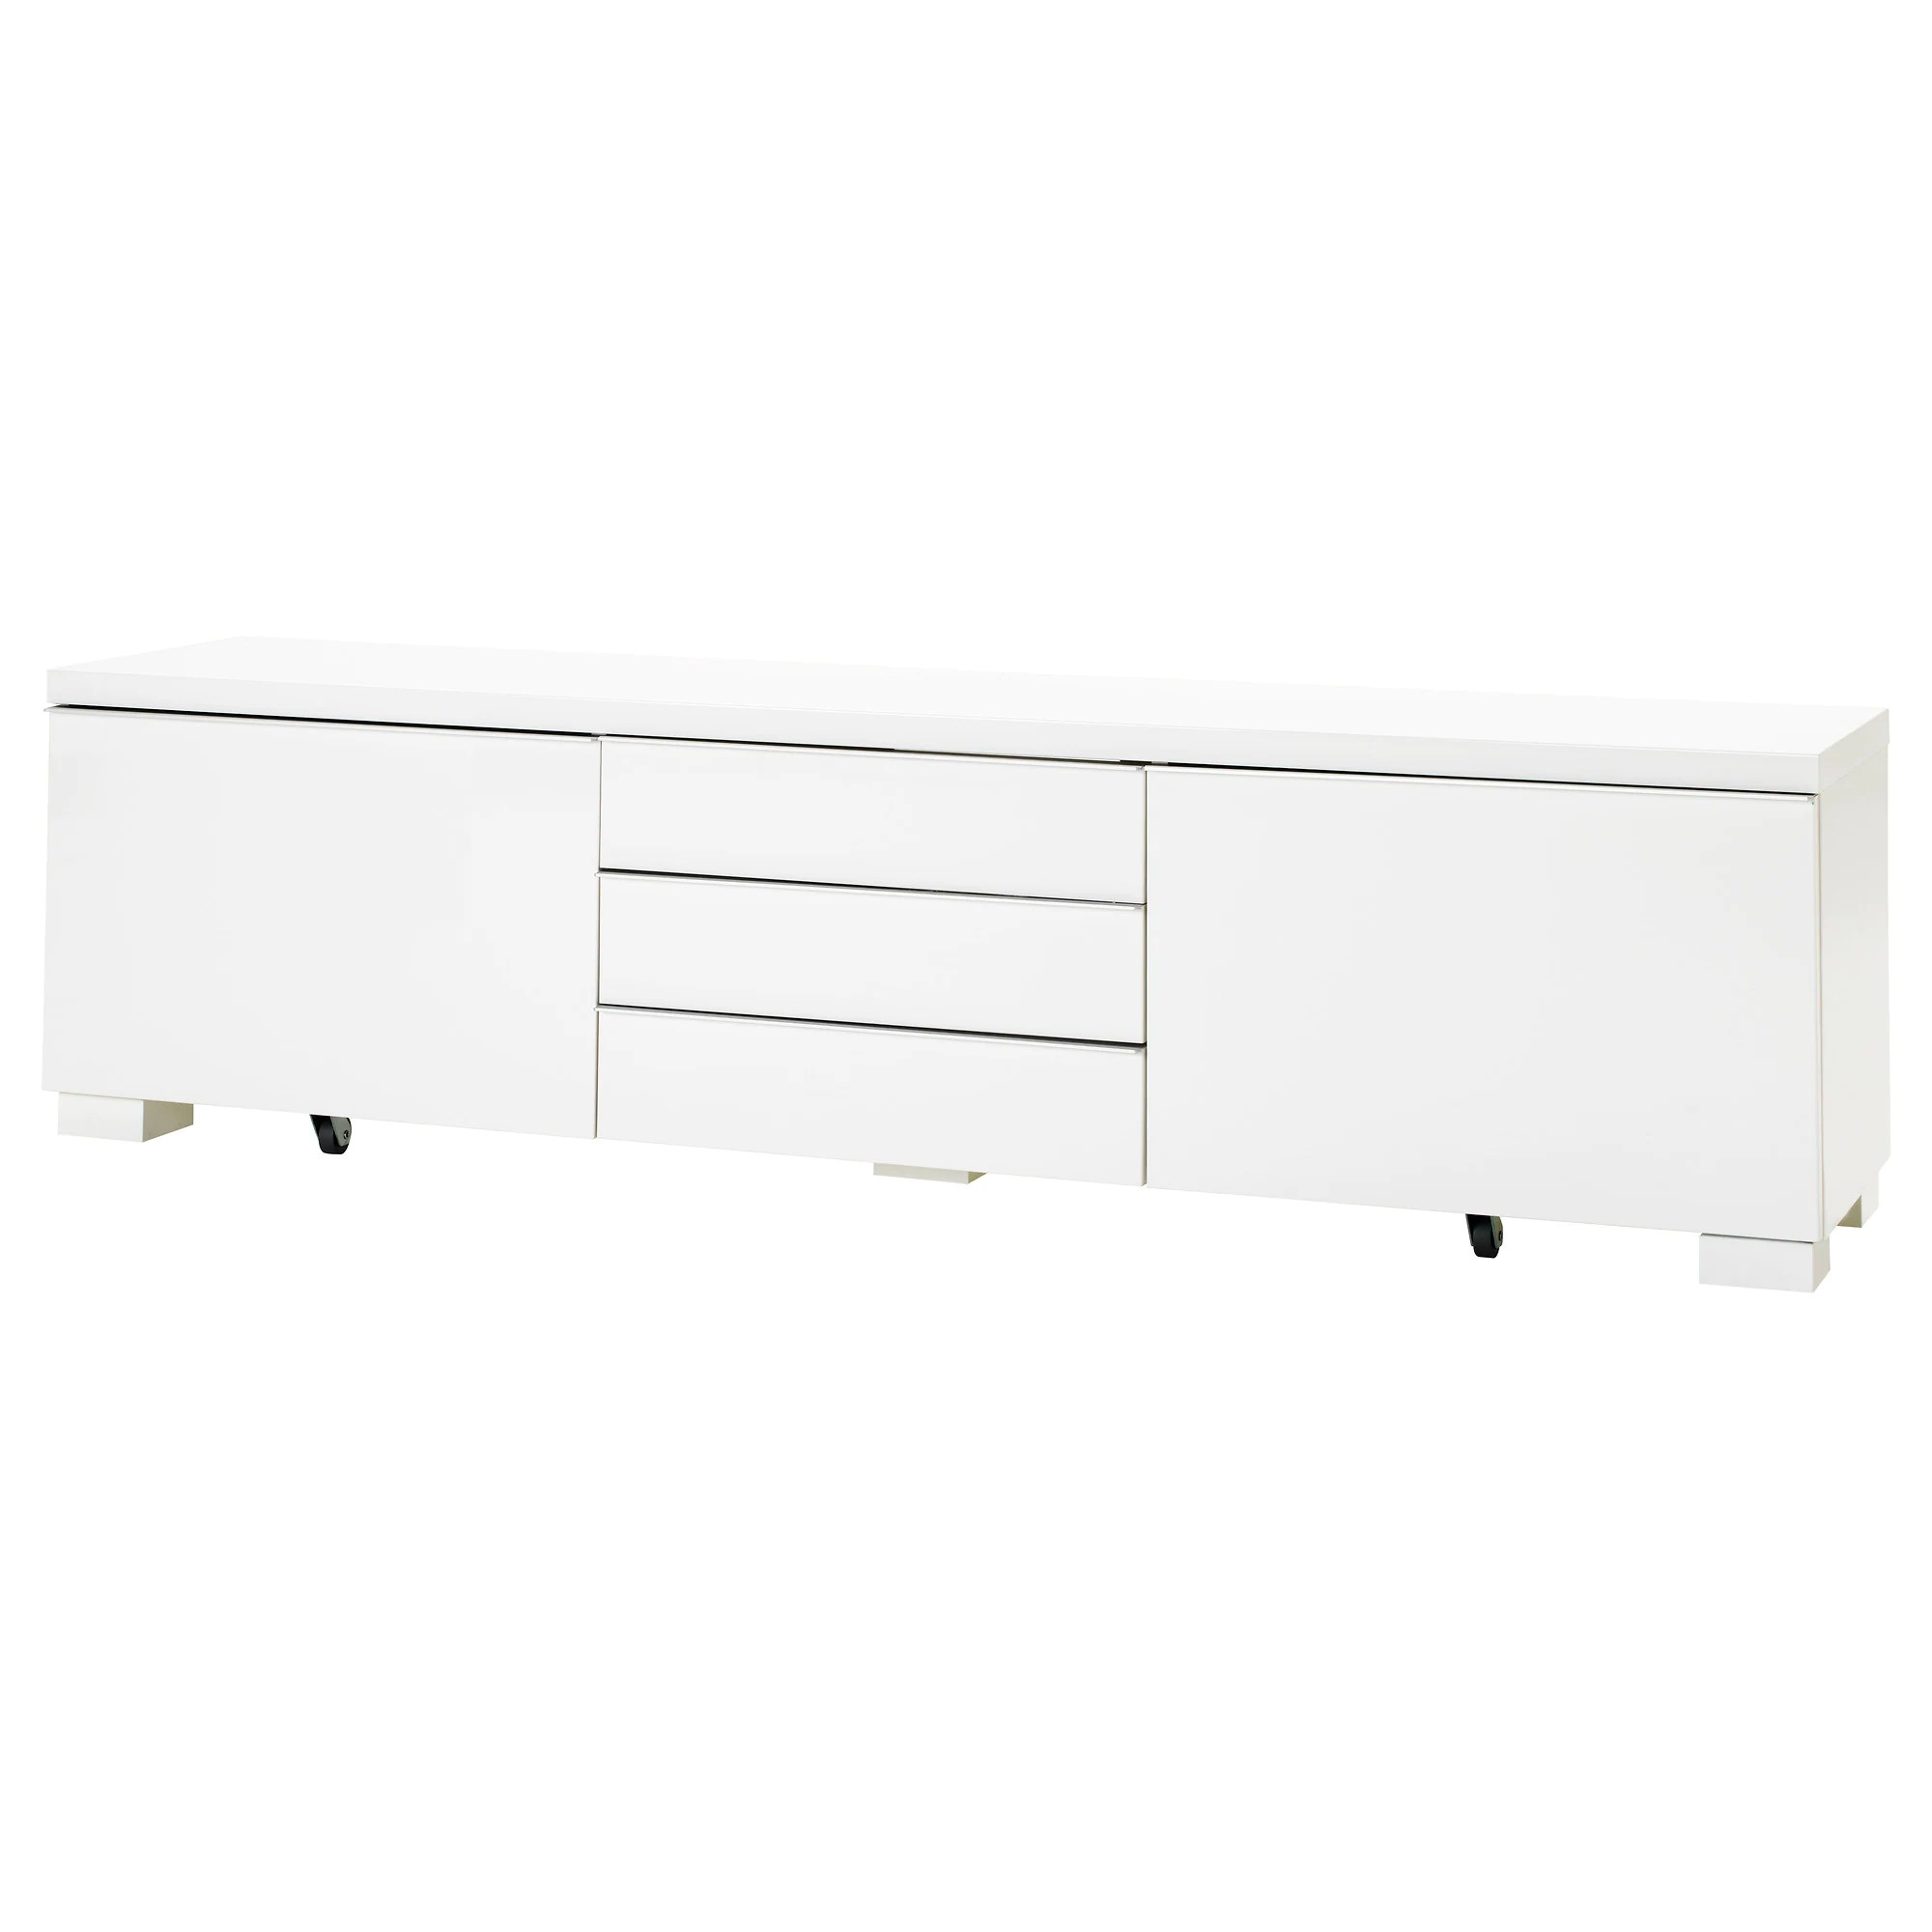 Catalogue Ikea Mulhouse Banc Tv BestÅ Burs Brillant Blanc